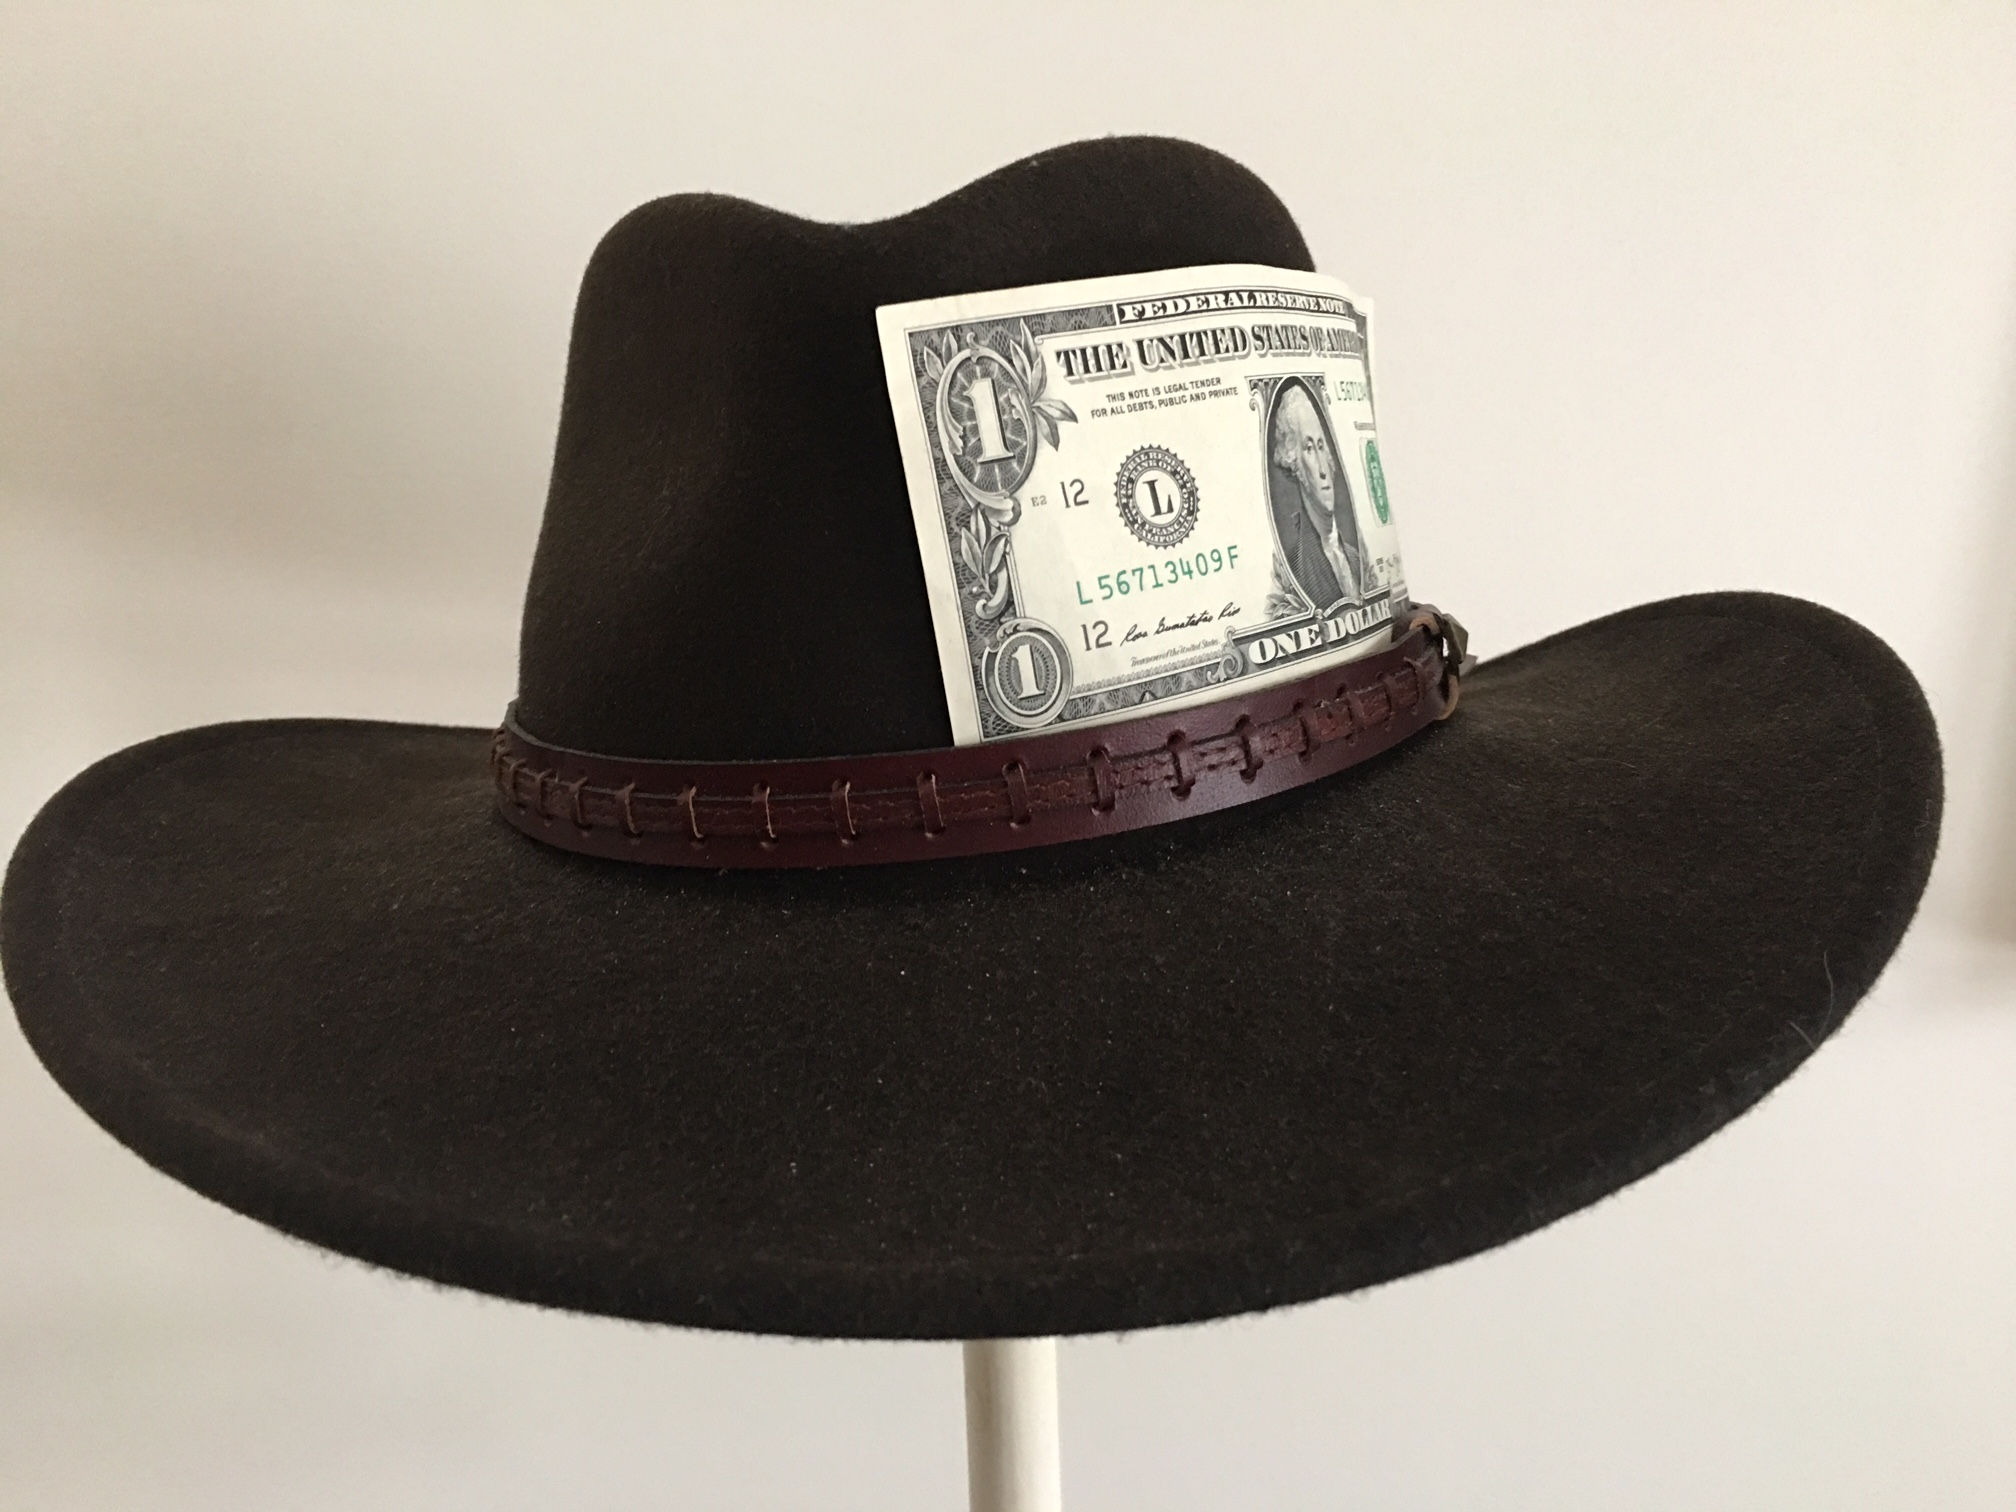 Moneycowboy.net